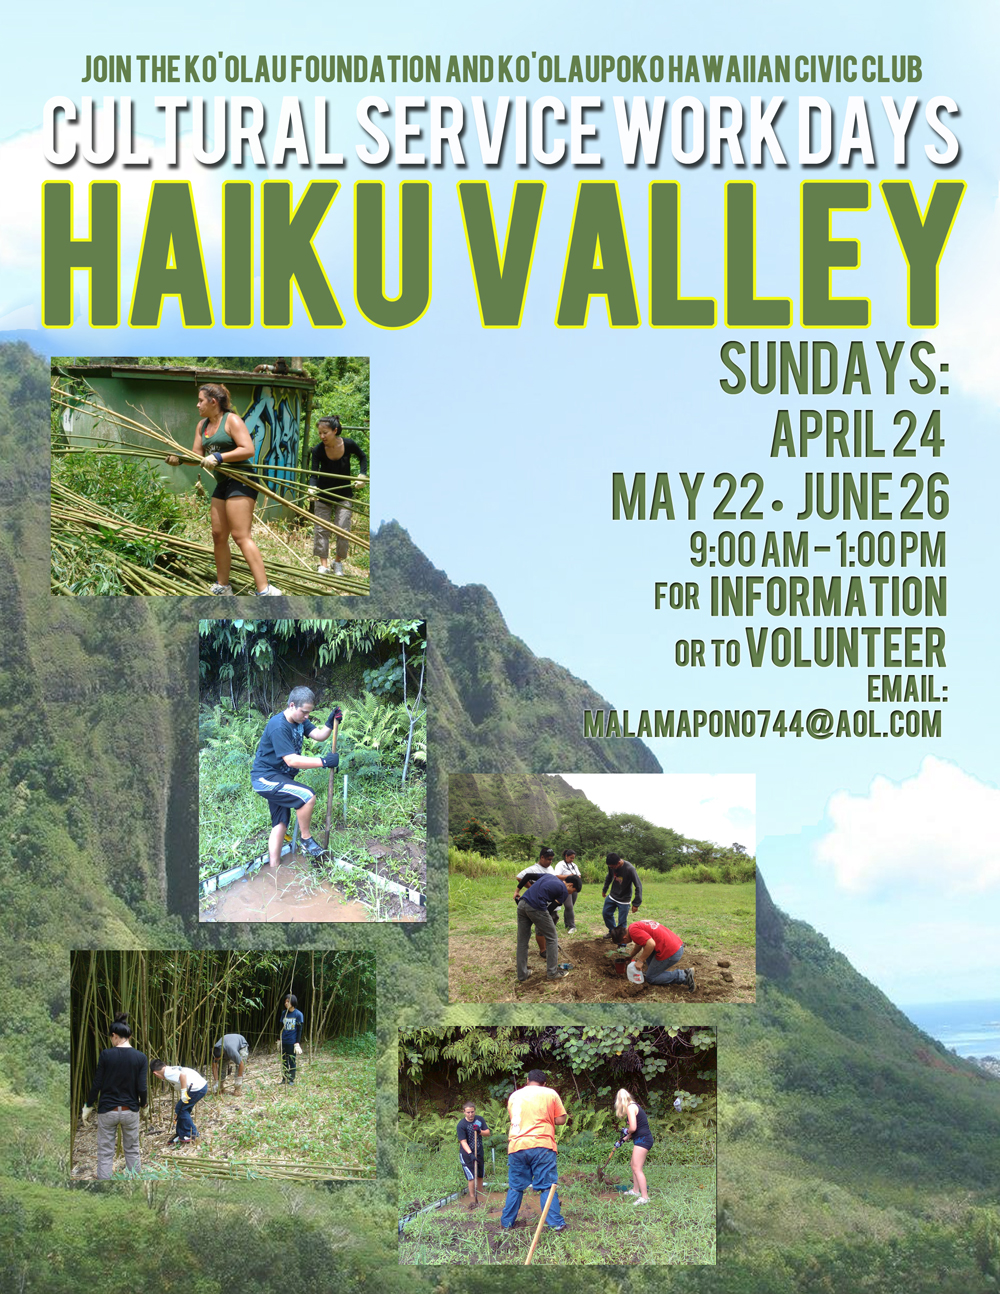 Haiku Valley Cultural Service Workday